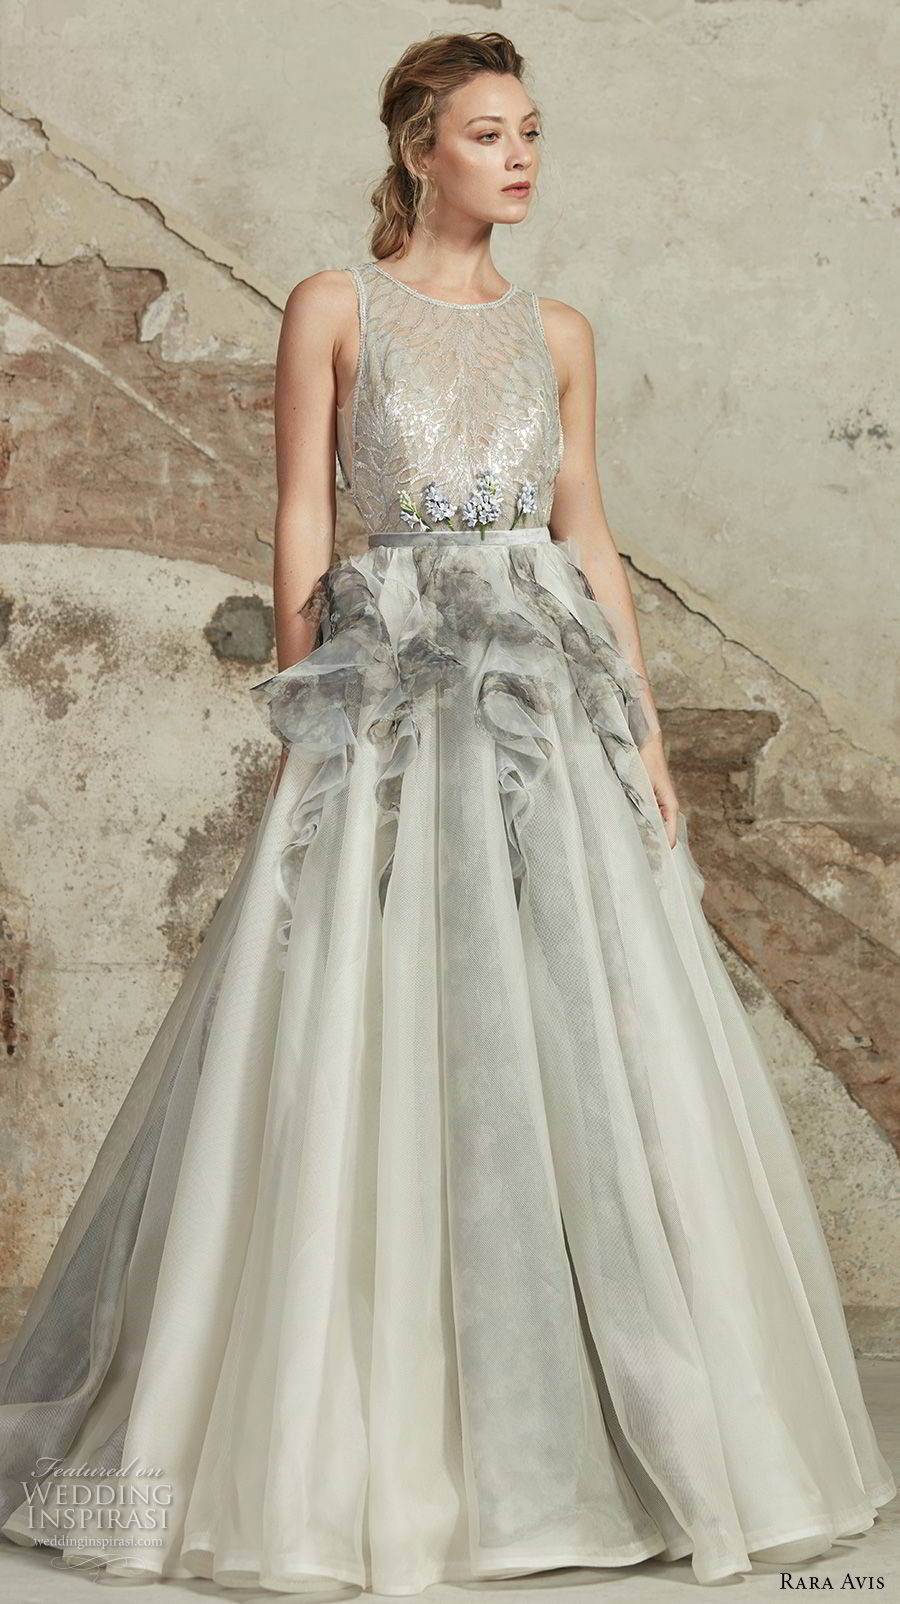 rara avis 2017 bridal sleeveless jewel neck heavily embellished bodice peplum pastel grey romantic a line wedding dress open v back chapel train (4) mv